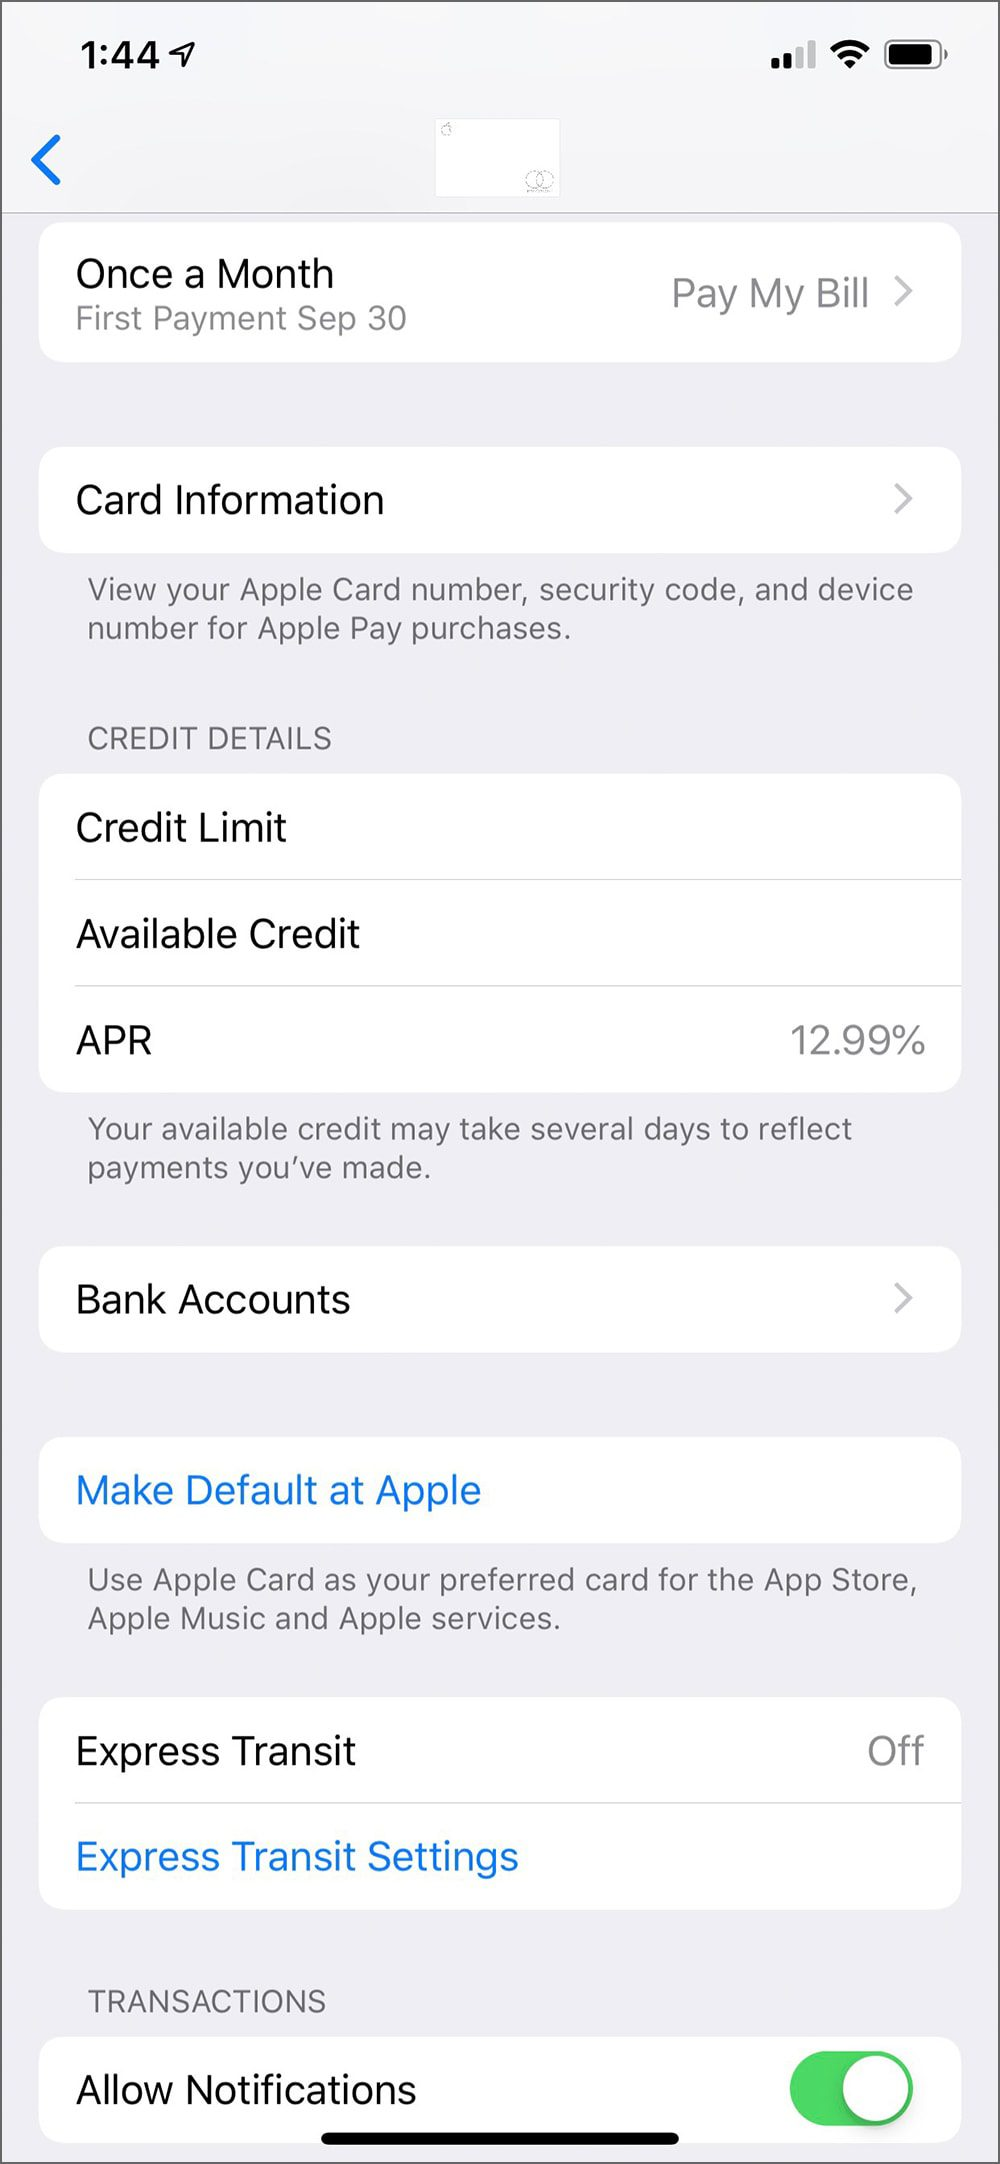 Apple Card setting screen in Wallet app